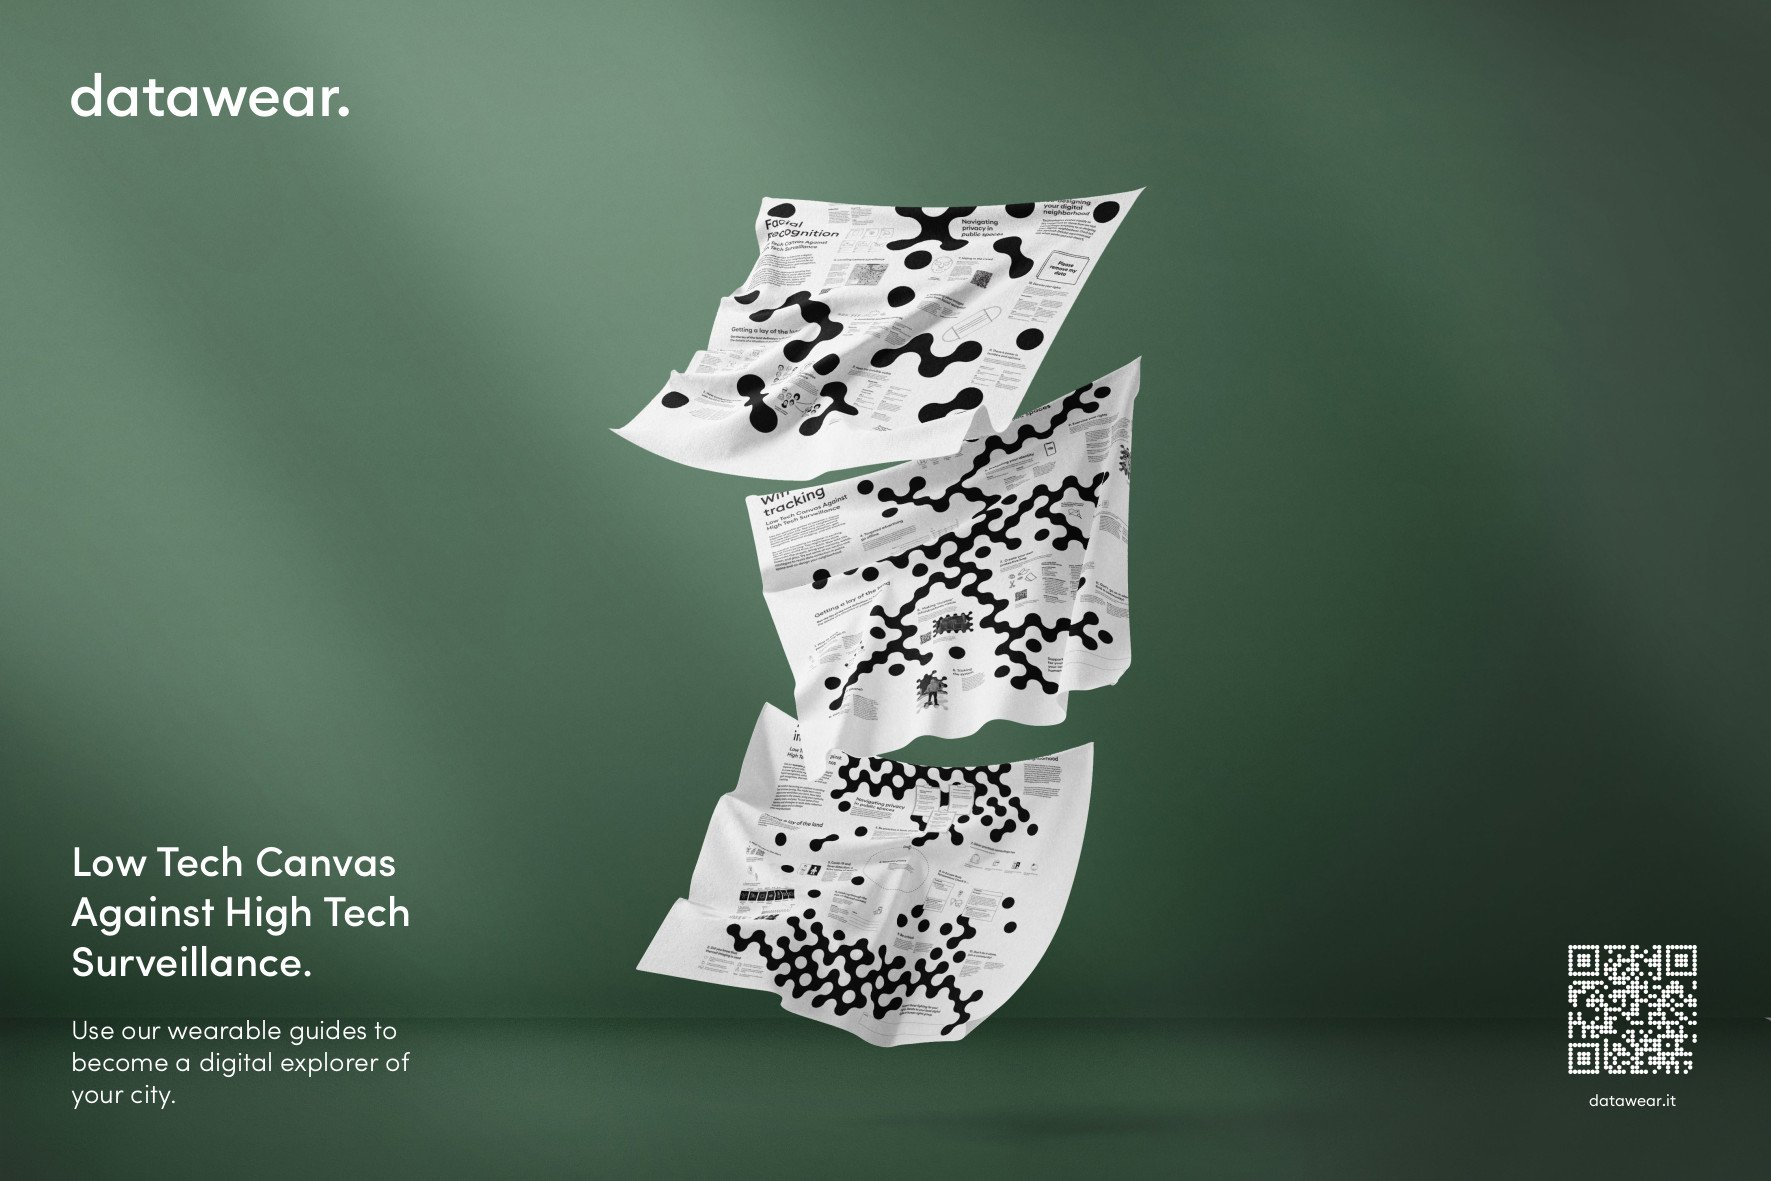 """An image of white canvas with black spots in front of a green background with the text """"data wear. 'Low Tech Canvas Against High Tech Surveillance'"""""""